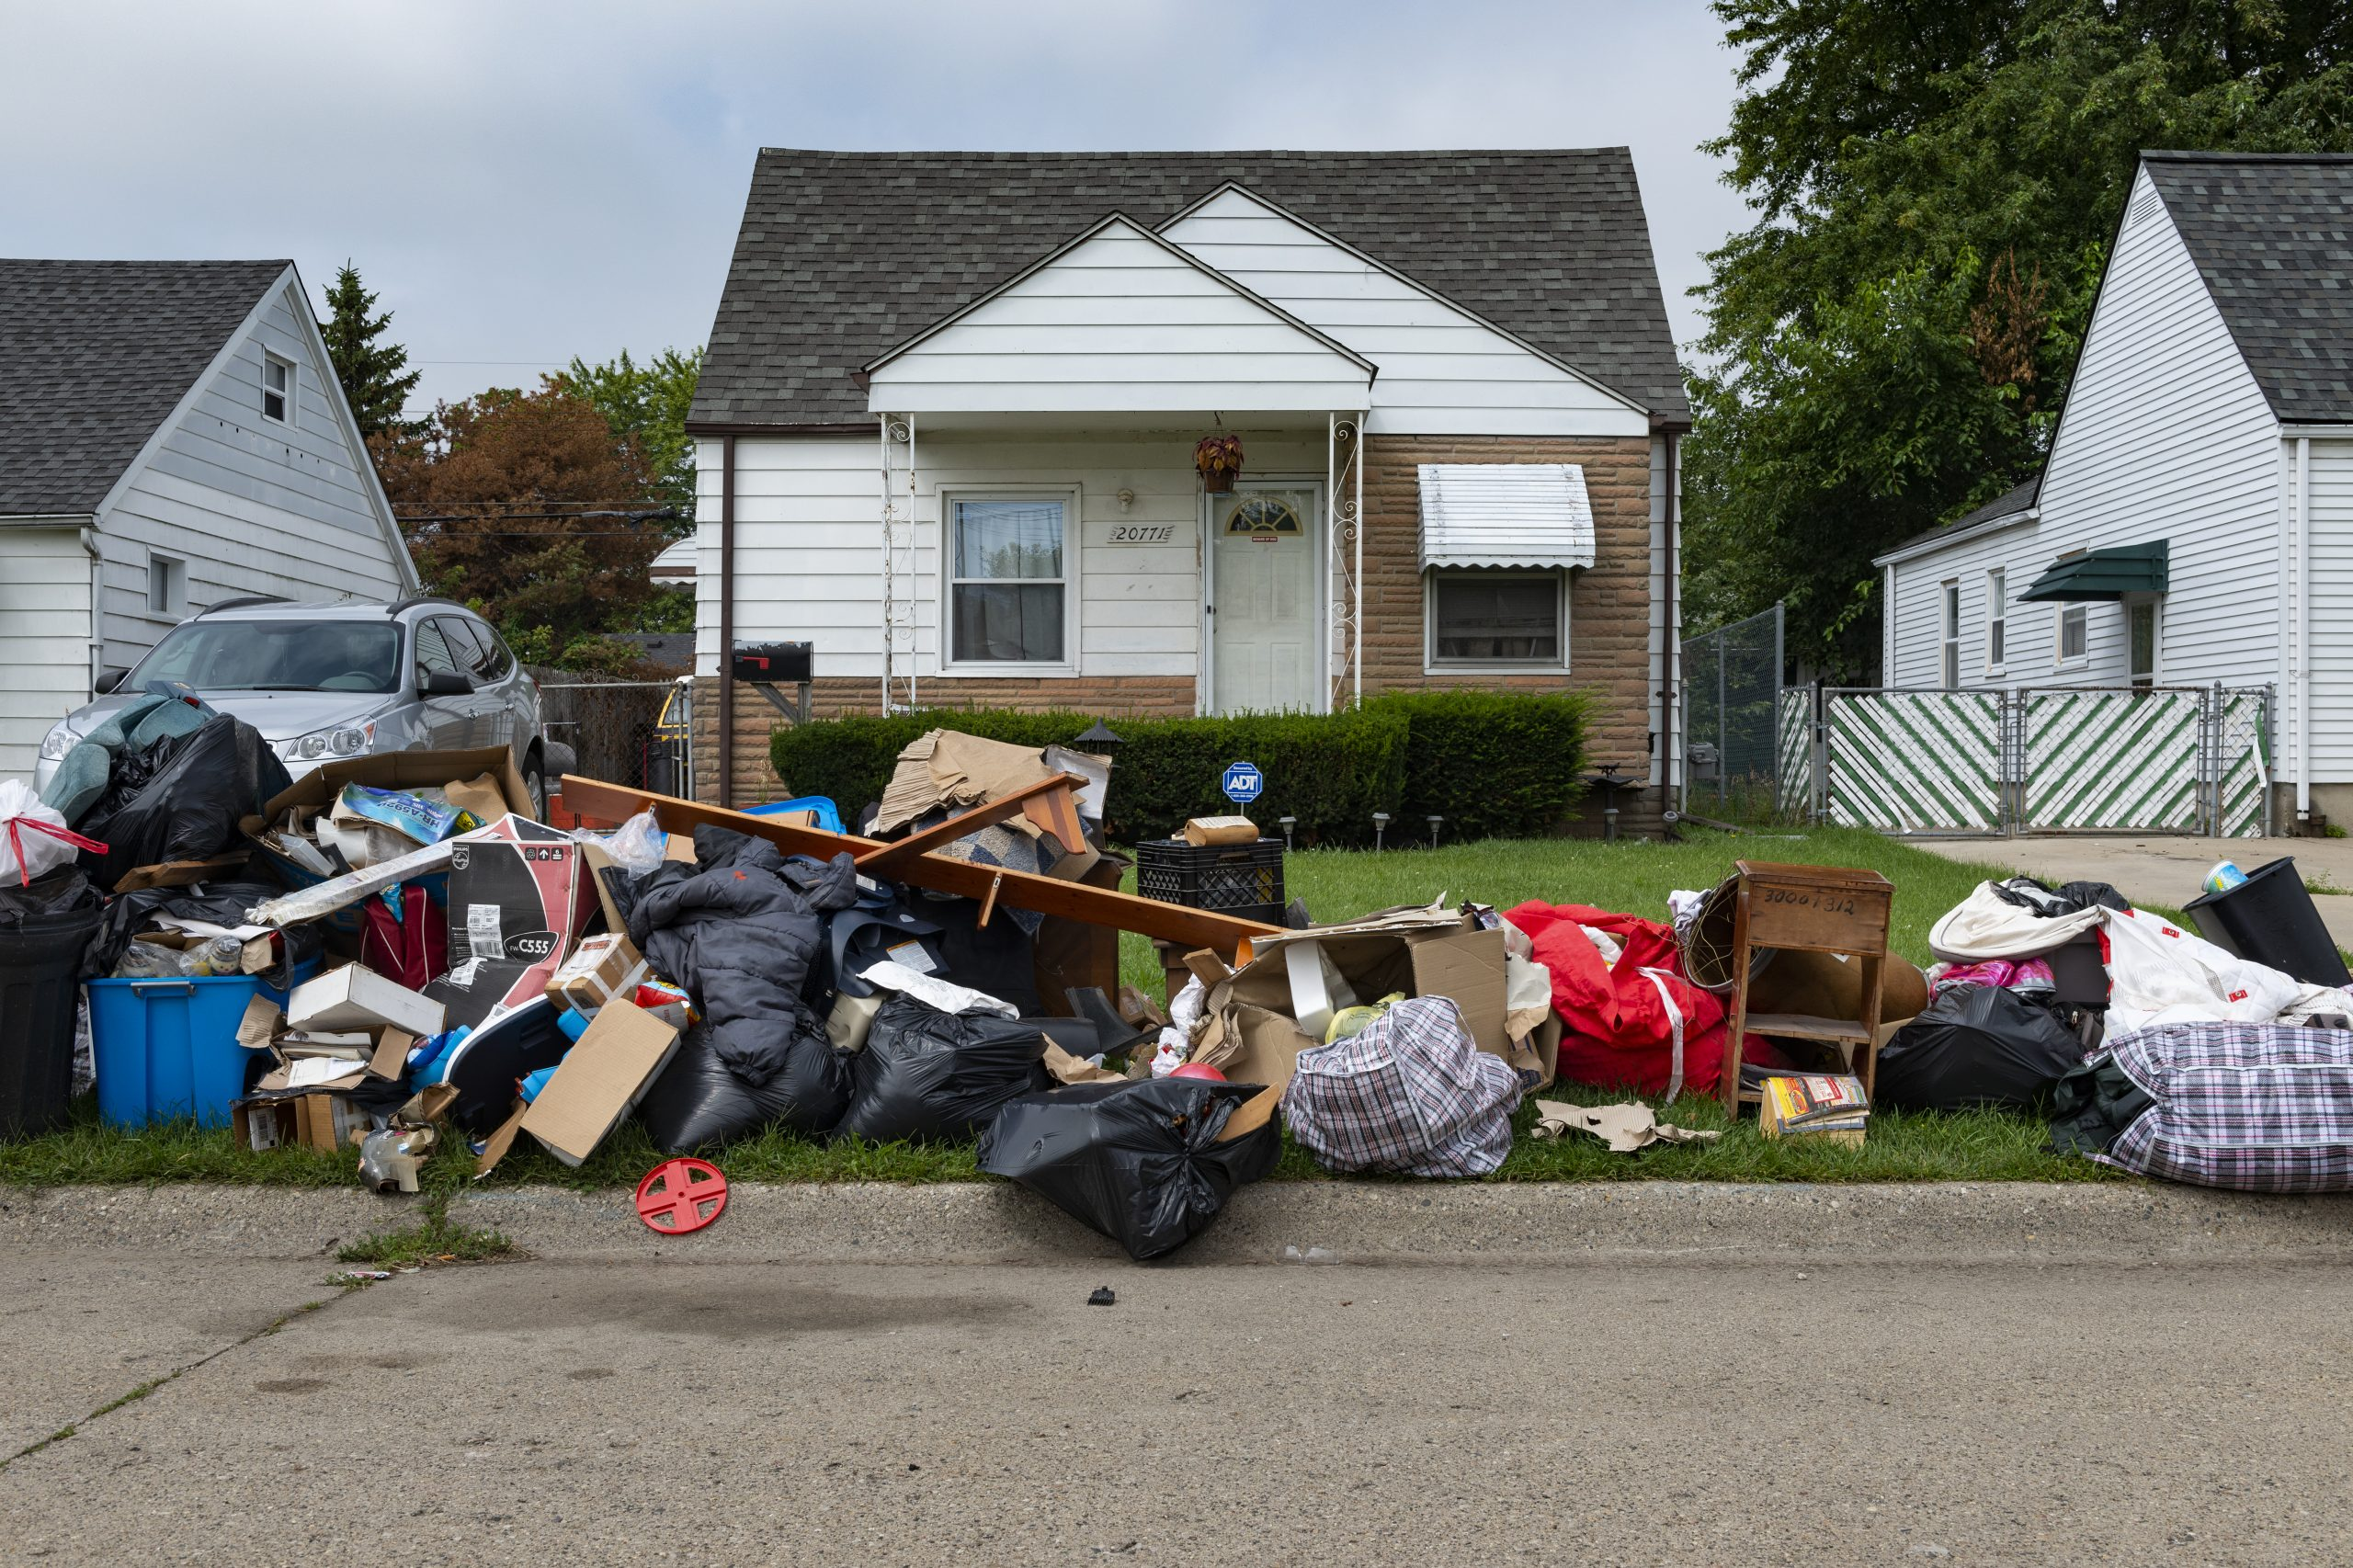 vacant home with evicted tenants' belongings on sidewalk